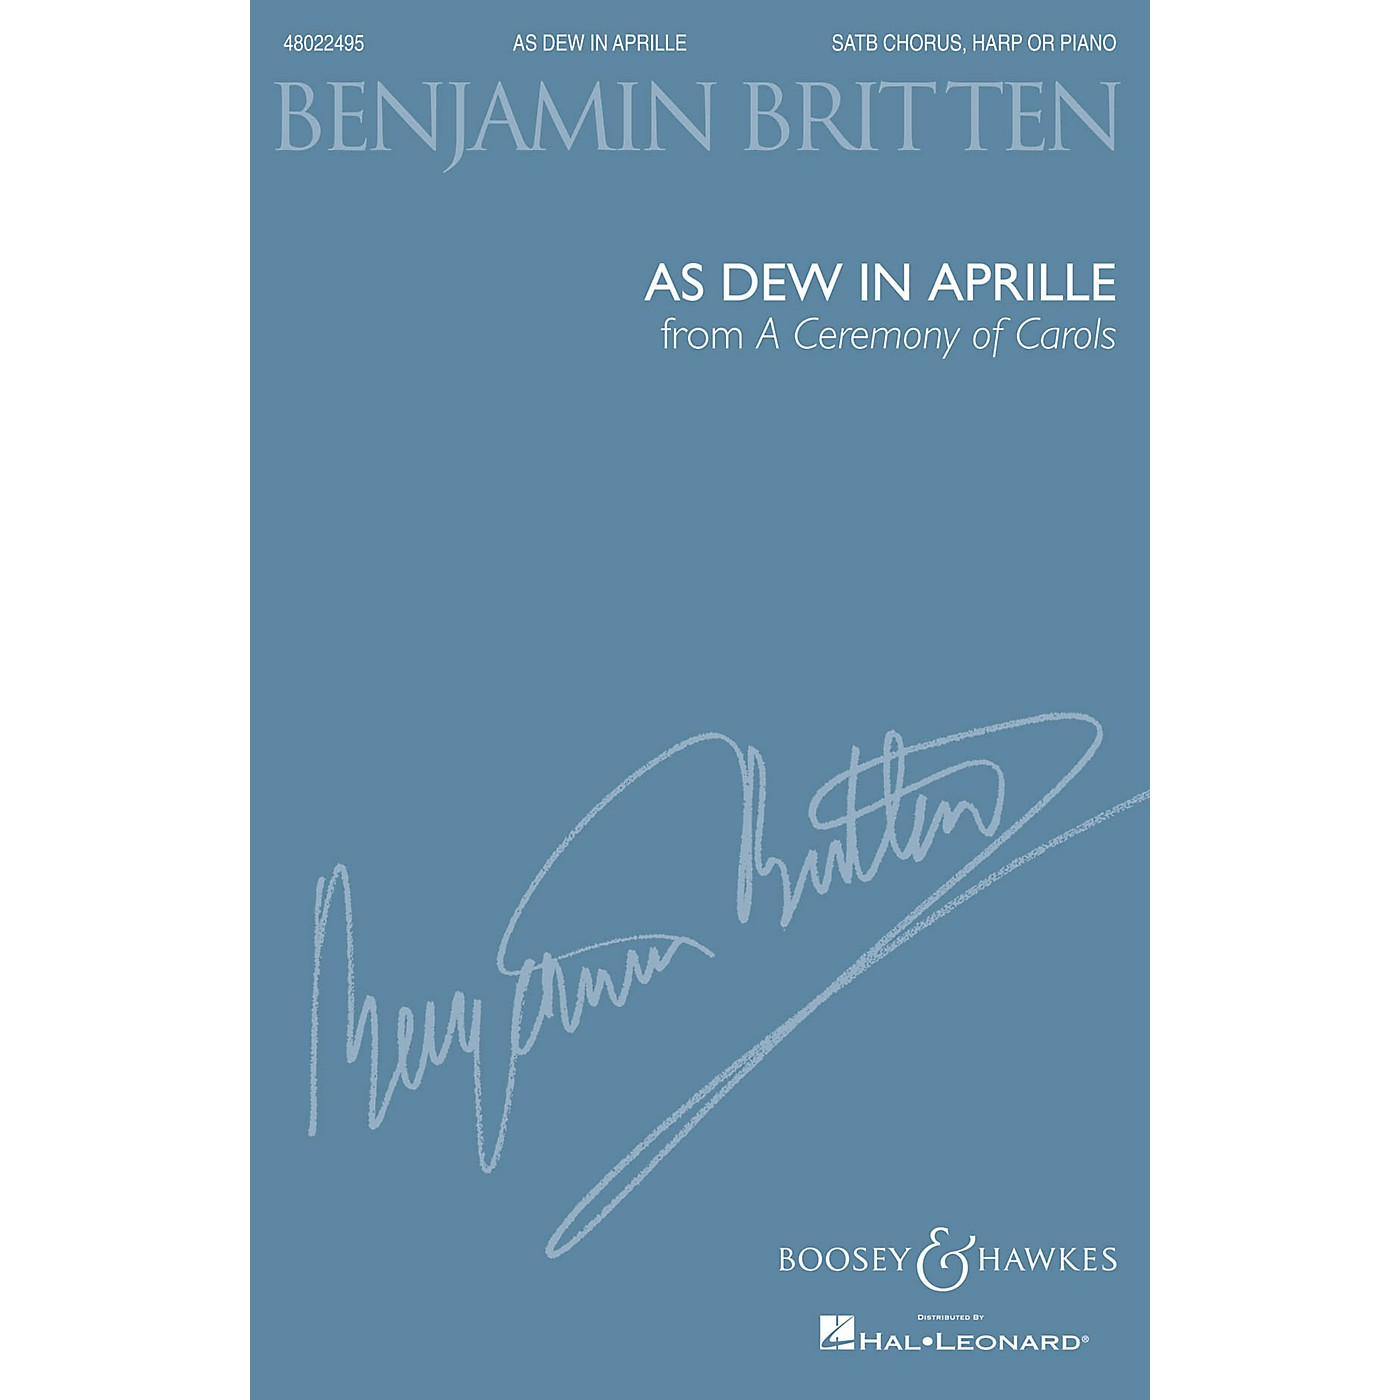 Boosey and Hawkes As Dew in Aprille (from A Ceremony of Carols) (SATB and Harp or Piano, New Edition) by Benjamin Britten thumbnail